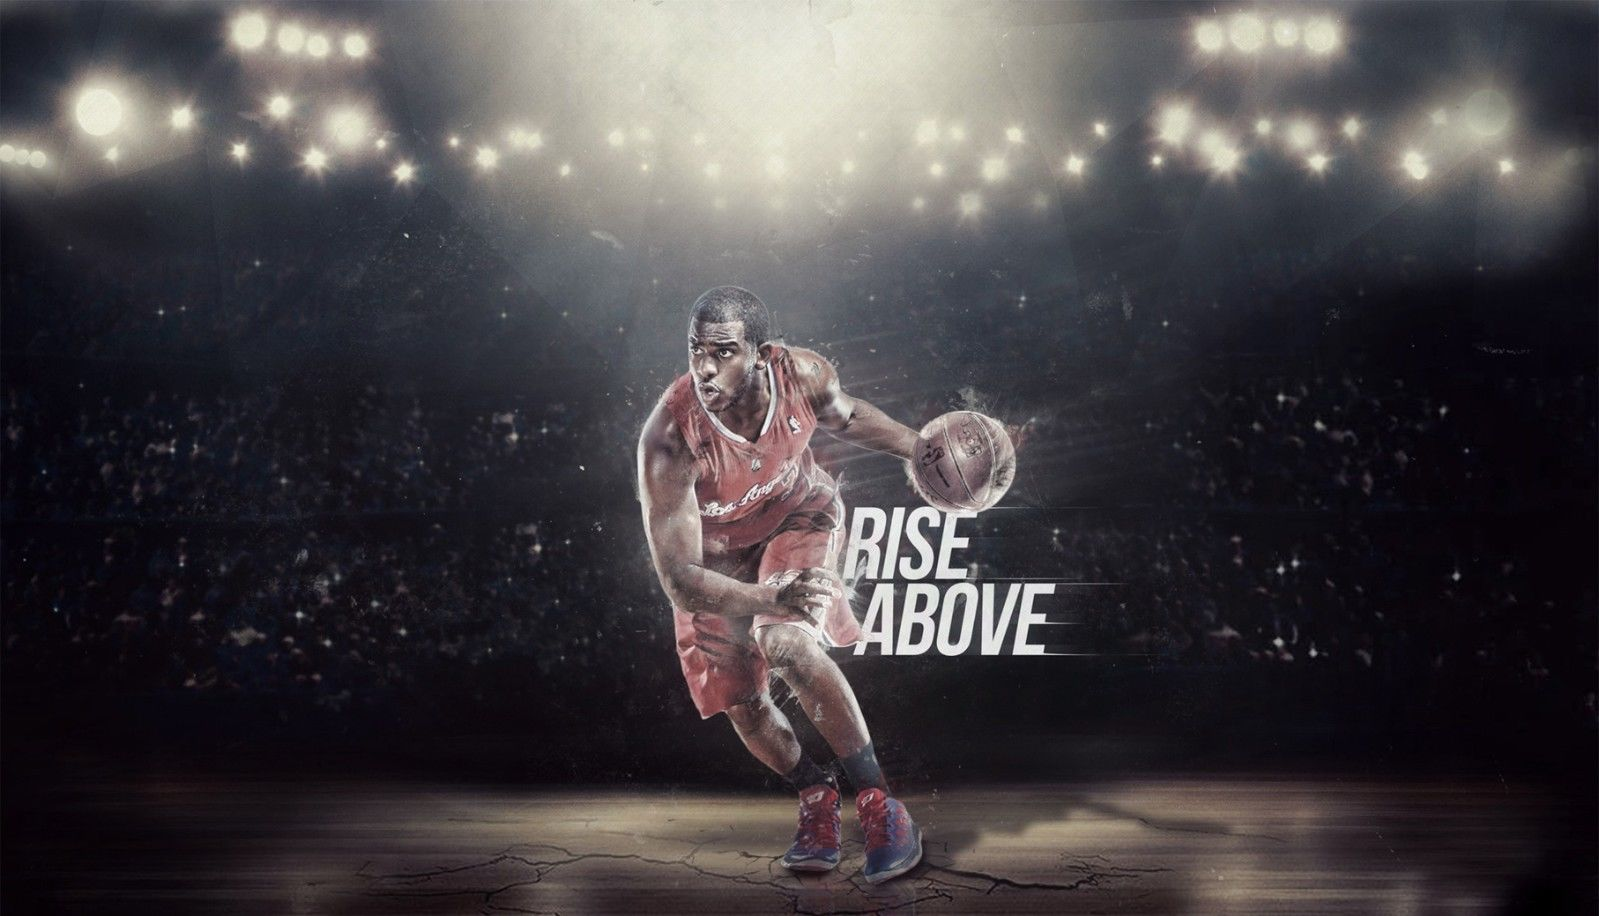 Chris-Paul-Basketball-Star-Fabric-poster-wallpaper-wp3803771